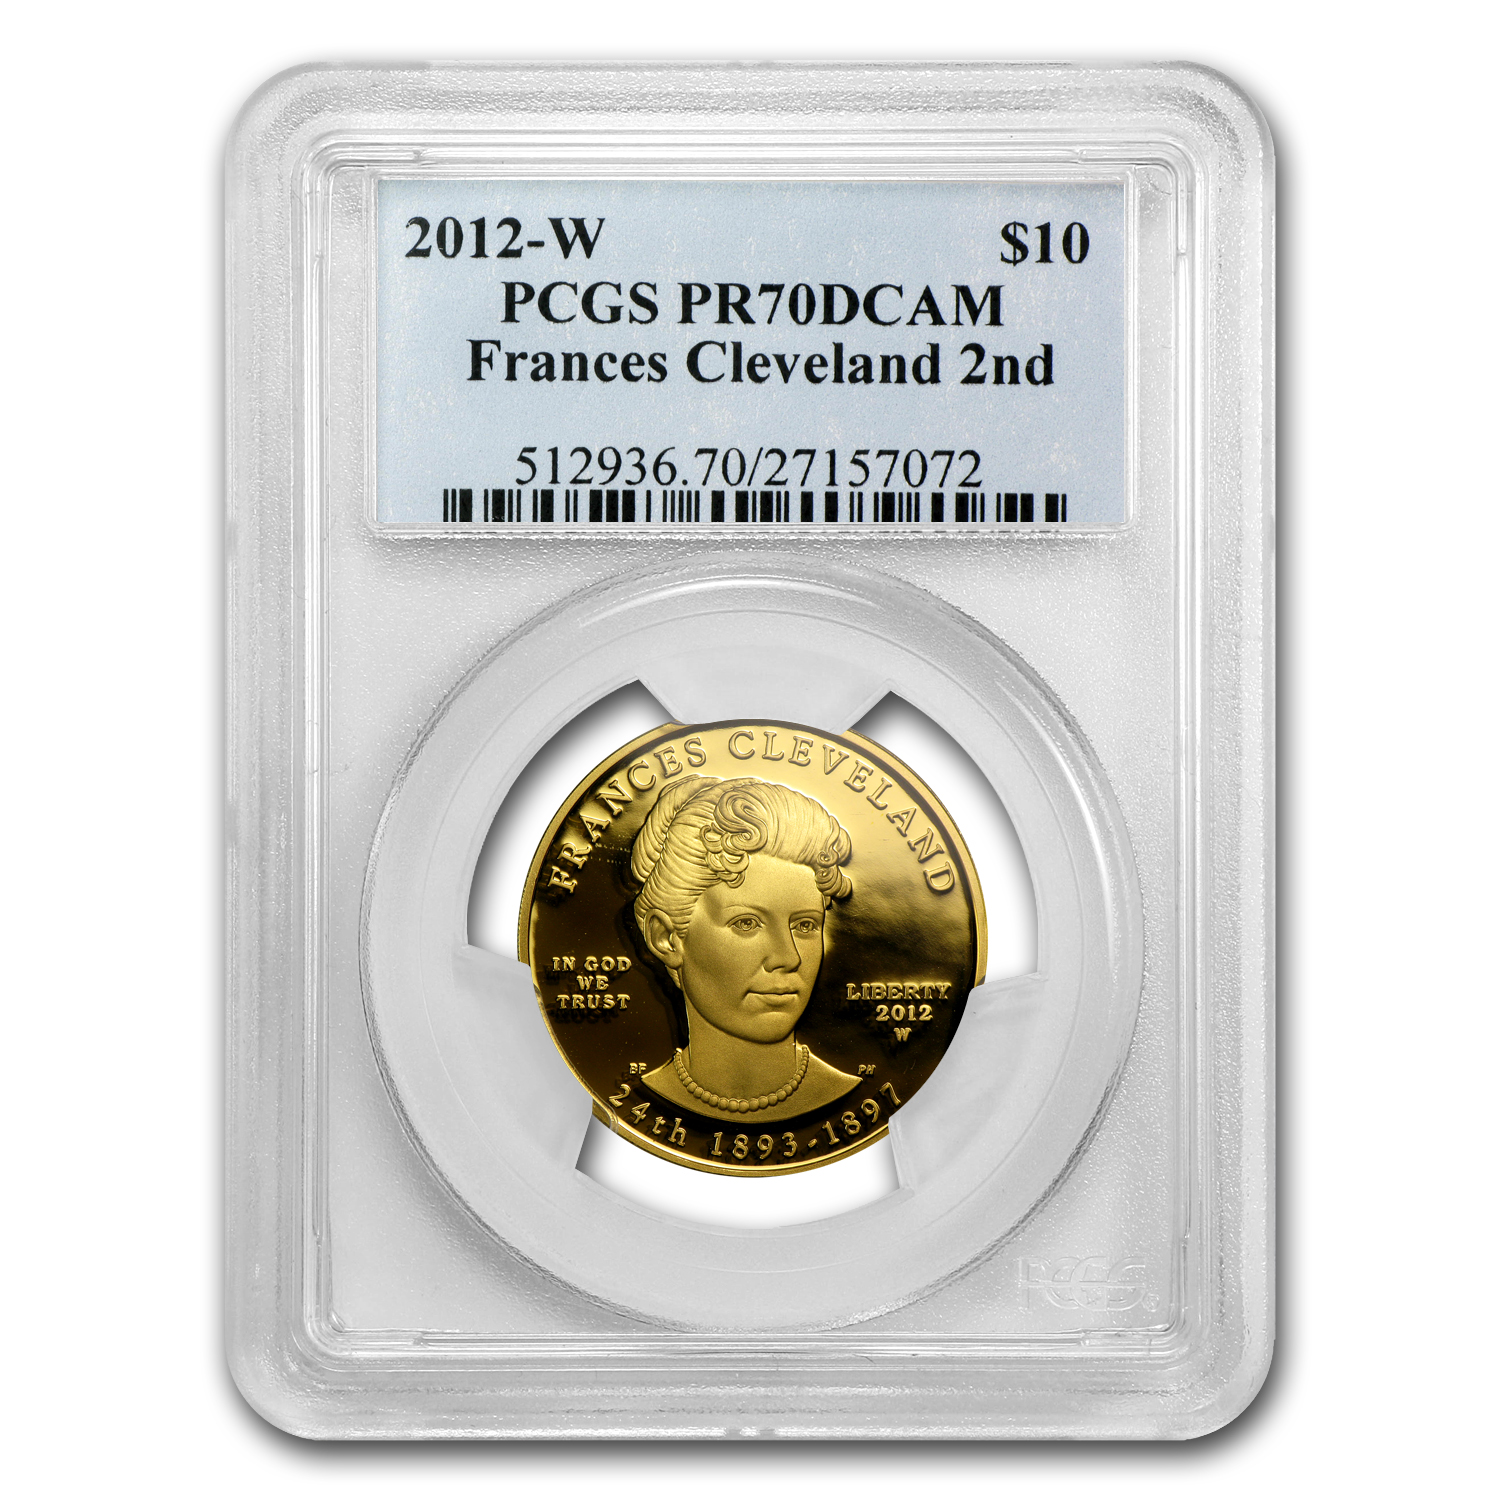 2012-W 1/2oz Proof Frances Cleveland - 2nd Term PCGS PR-70 DCAM